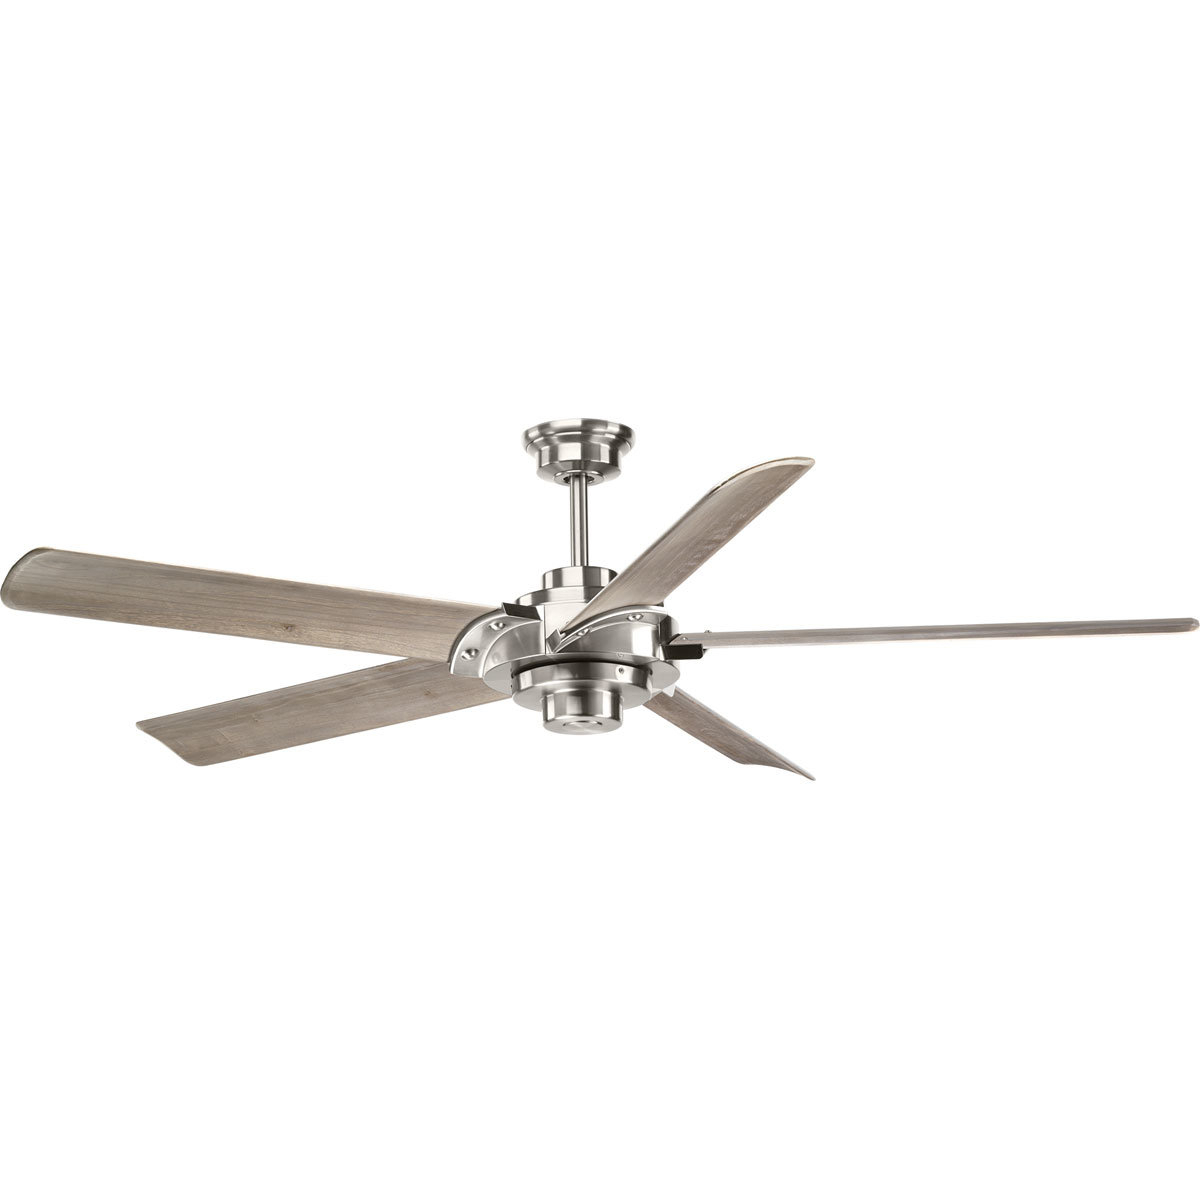 "Most Recent 68"" Thainara 5 Blade Ceiling Fan With Remote For Emil 3 Blade Ceiling Fans (View 12 of 20)"